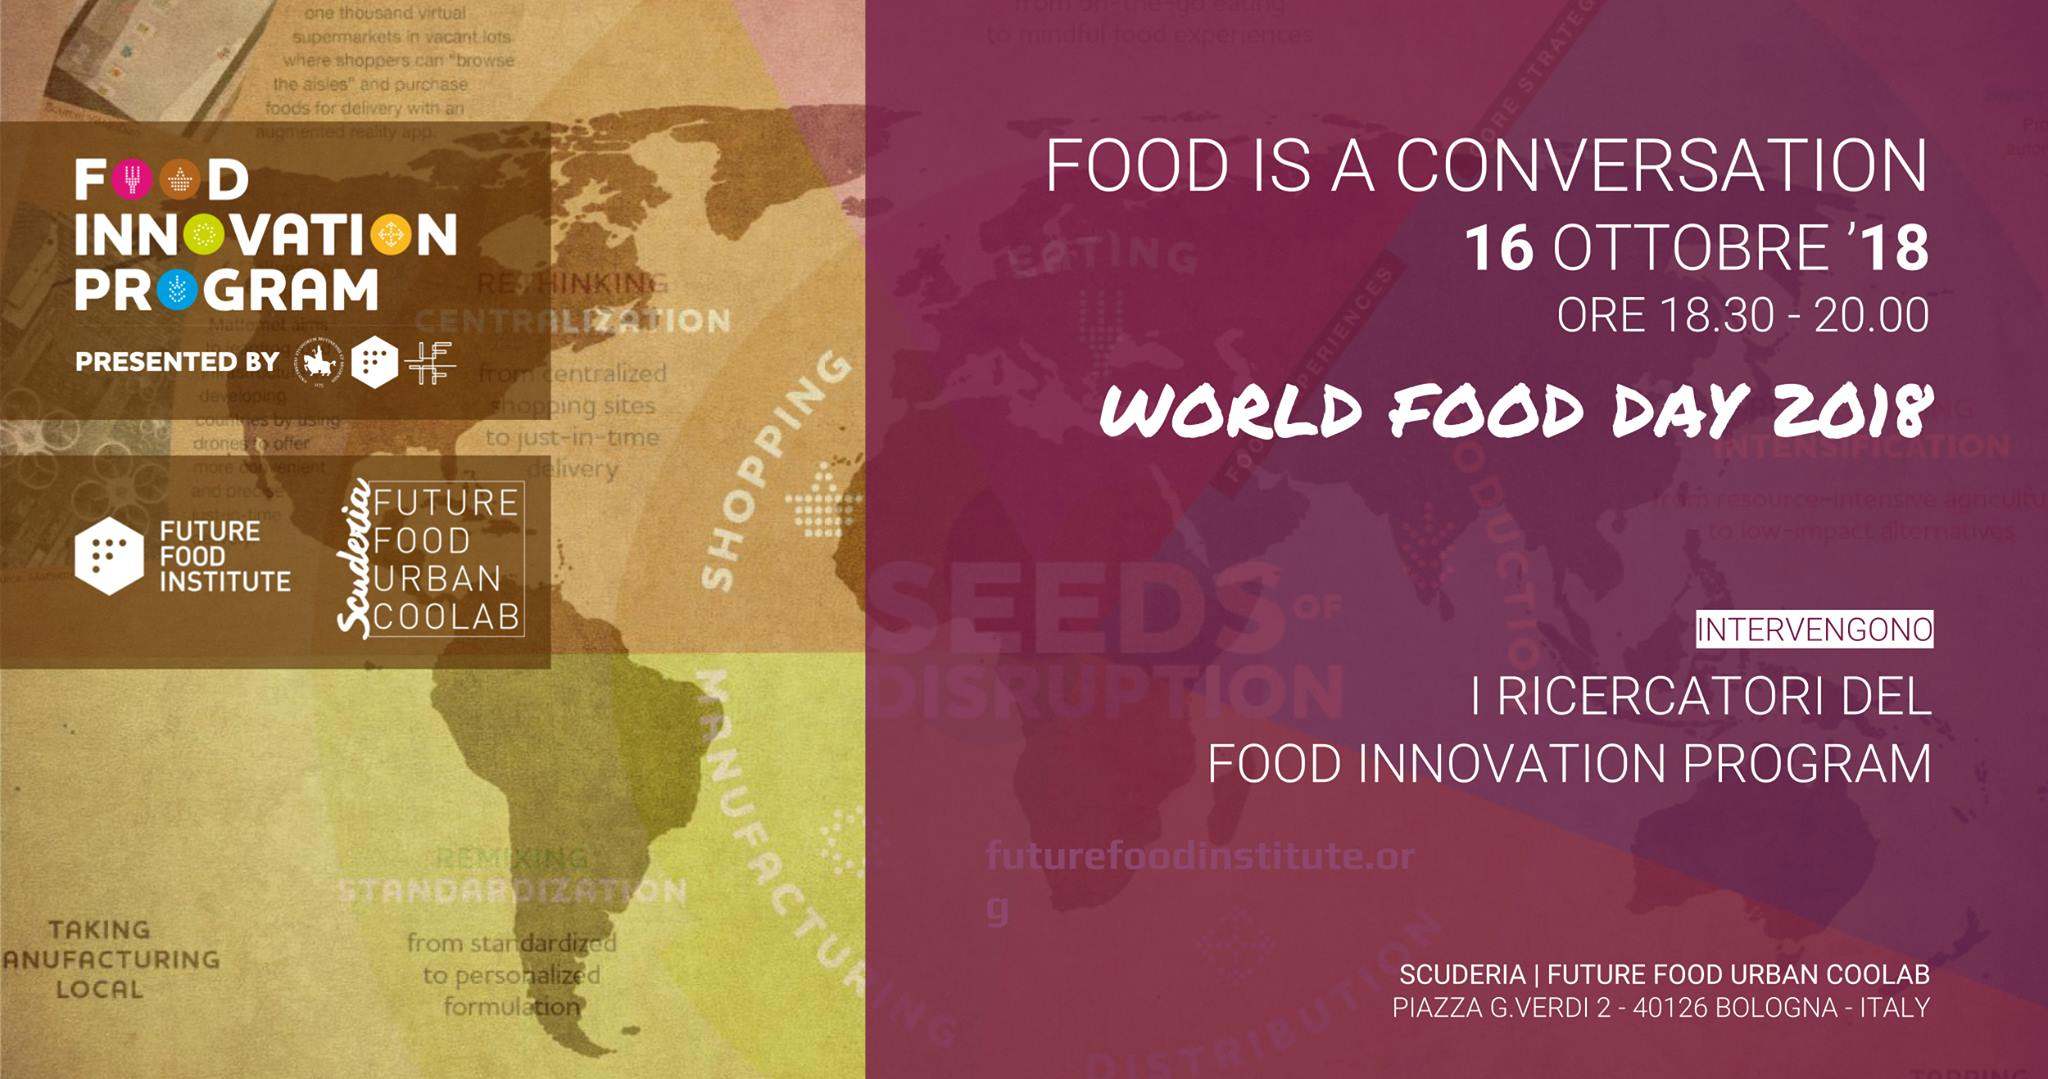 Food is a conversation: World Food Day 2018